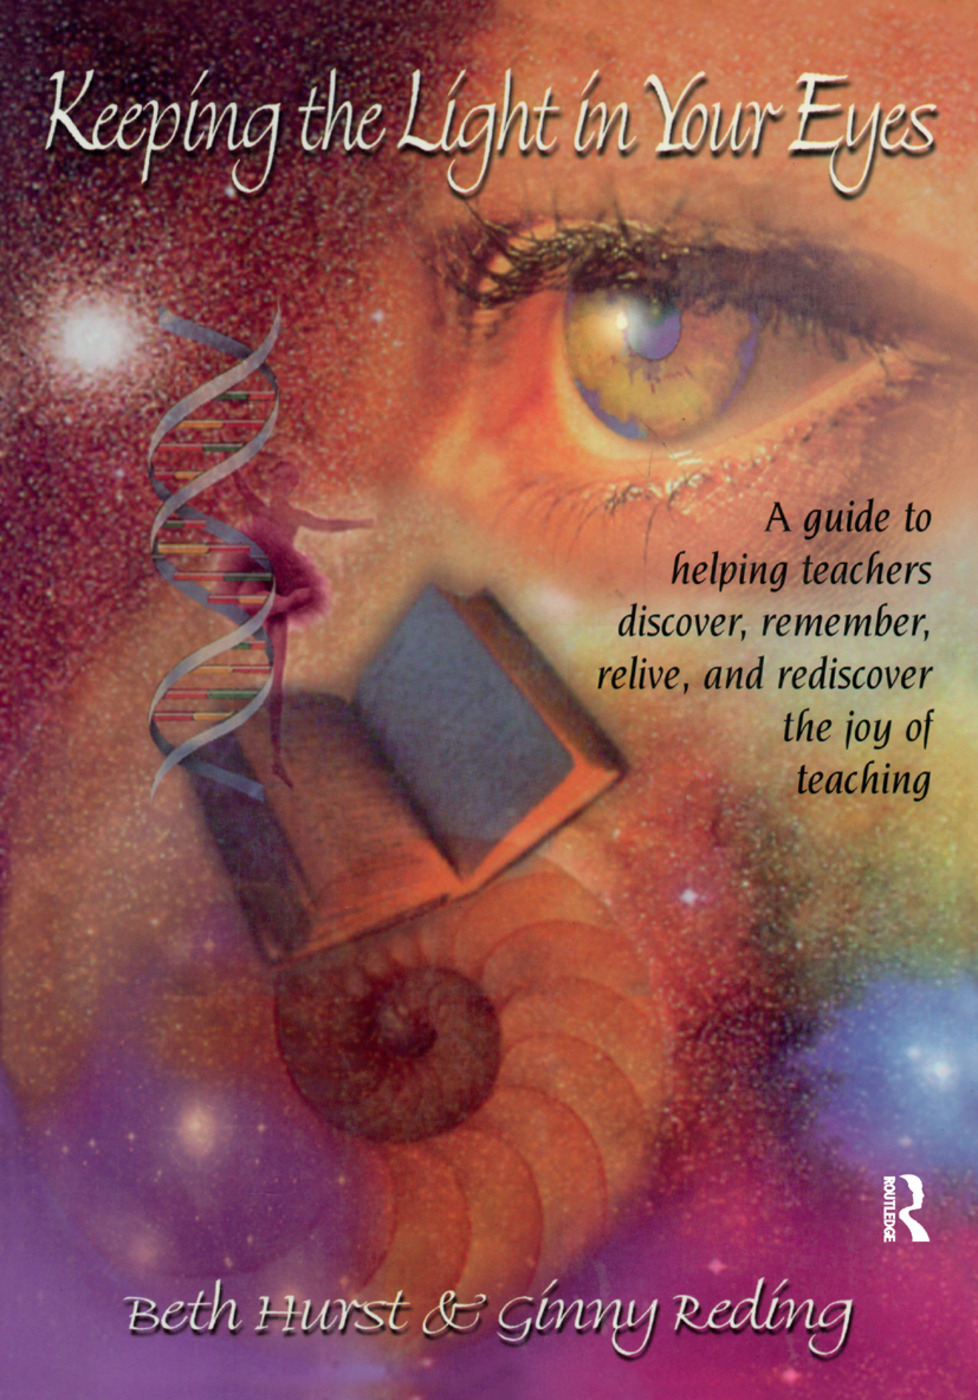 Keeping the Light in Your Eyes: A Guide to Helping Teachers Discover, Remember, Relive, and Rediscover the Joy of Teaching: A Guide to Helping Teachers Discover, Remember, Relive, and Rediscover the Joy of Teaching, 1st Edition (Hardback) book cover